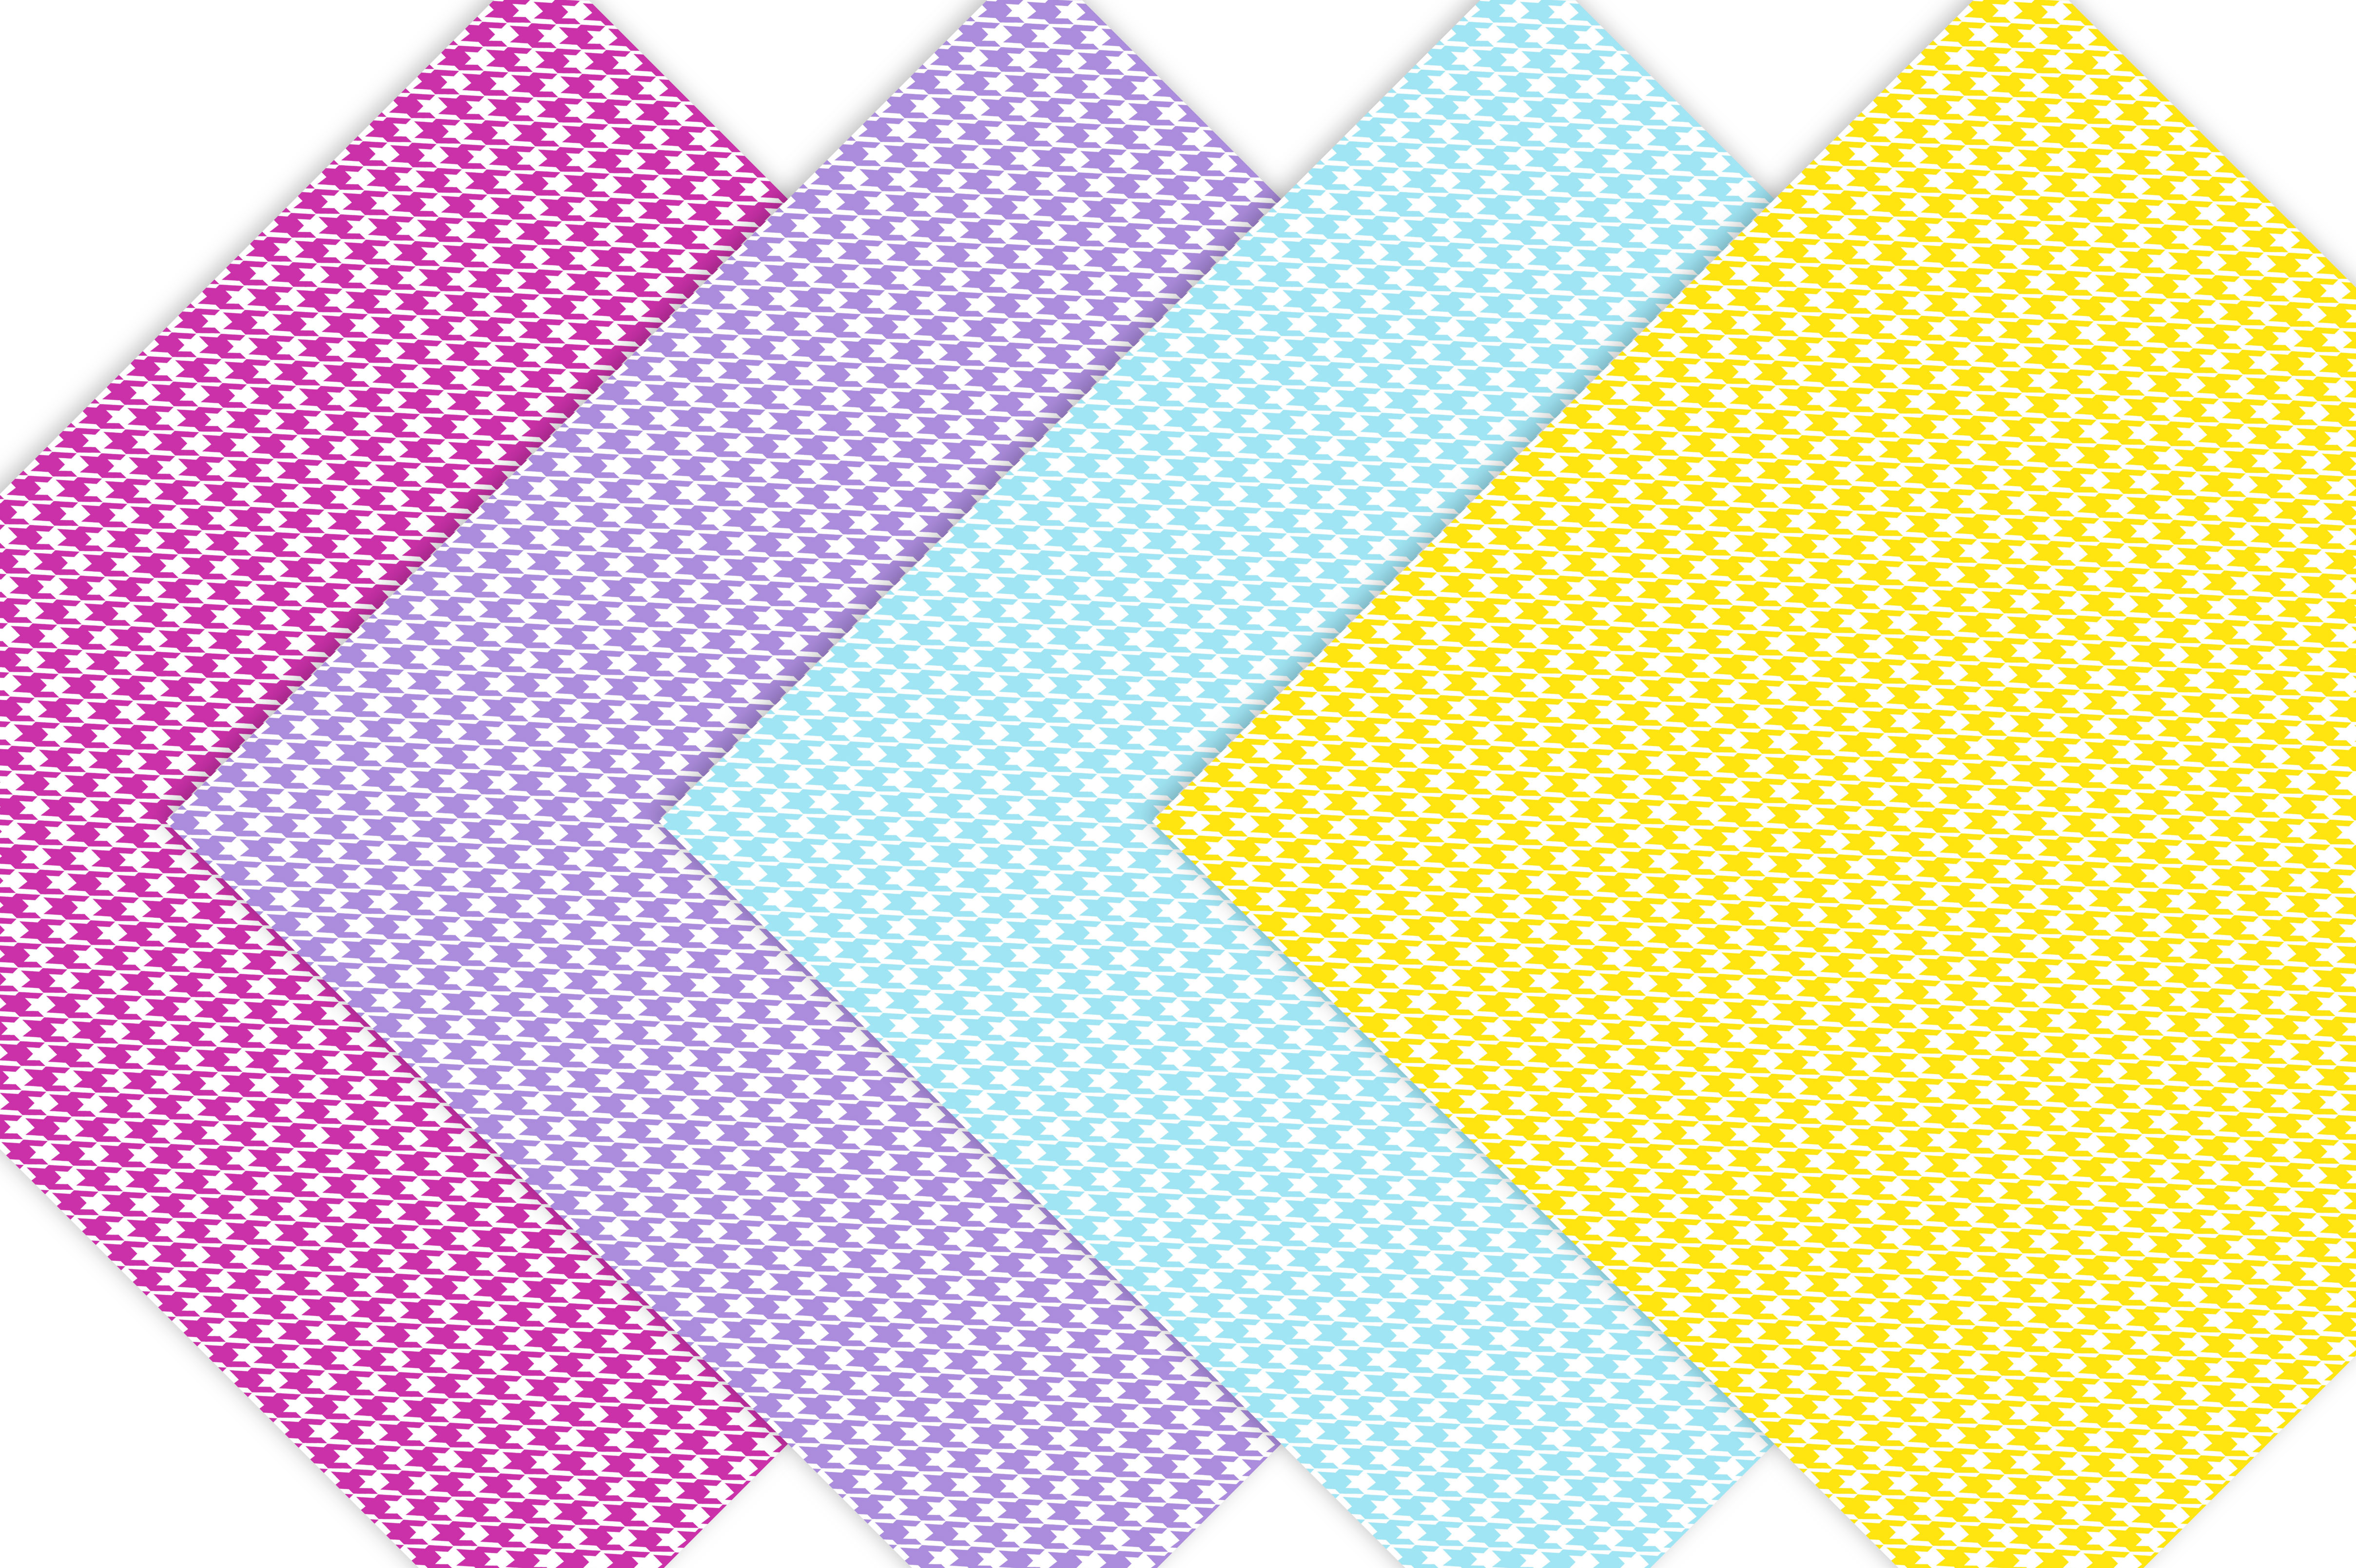 Houndstooth Digital Paper Pack - Rainbow example image 5